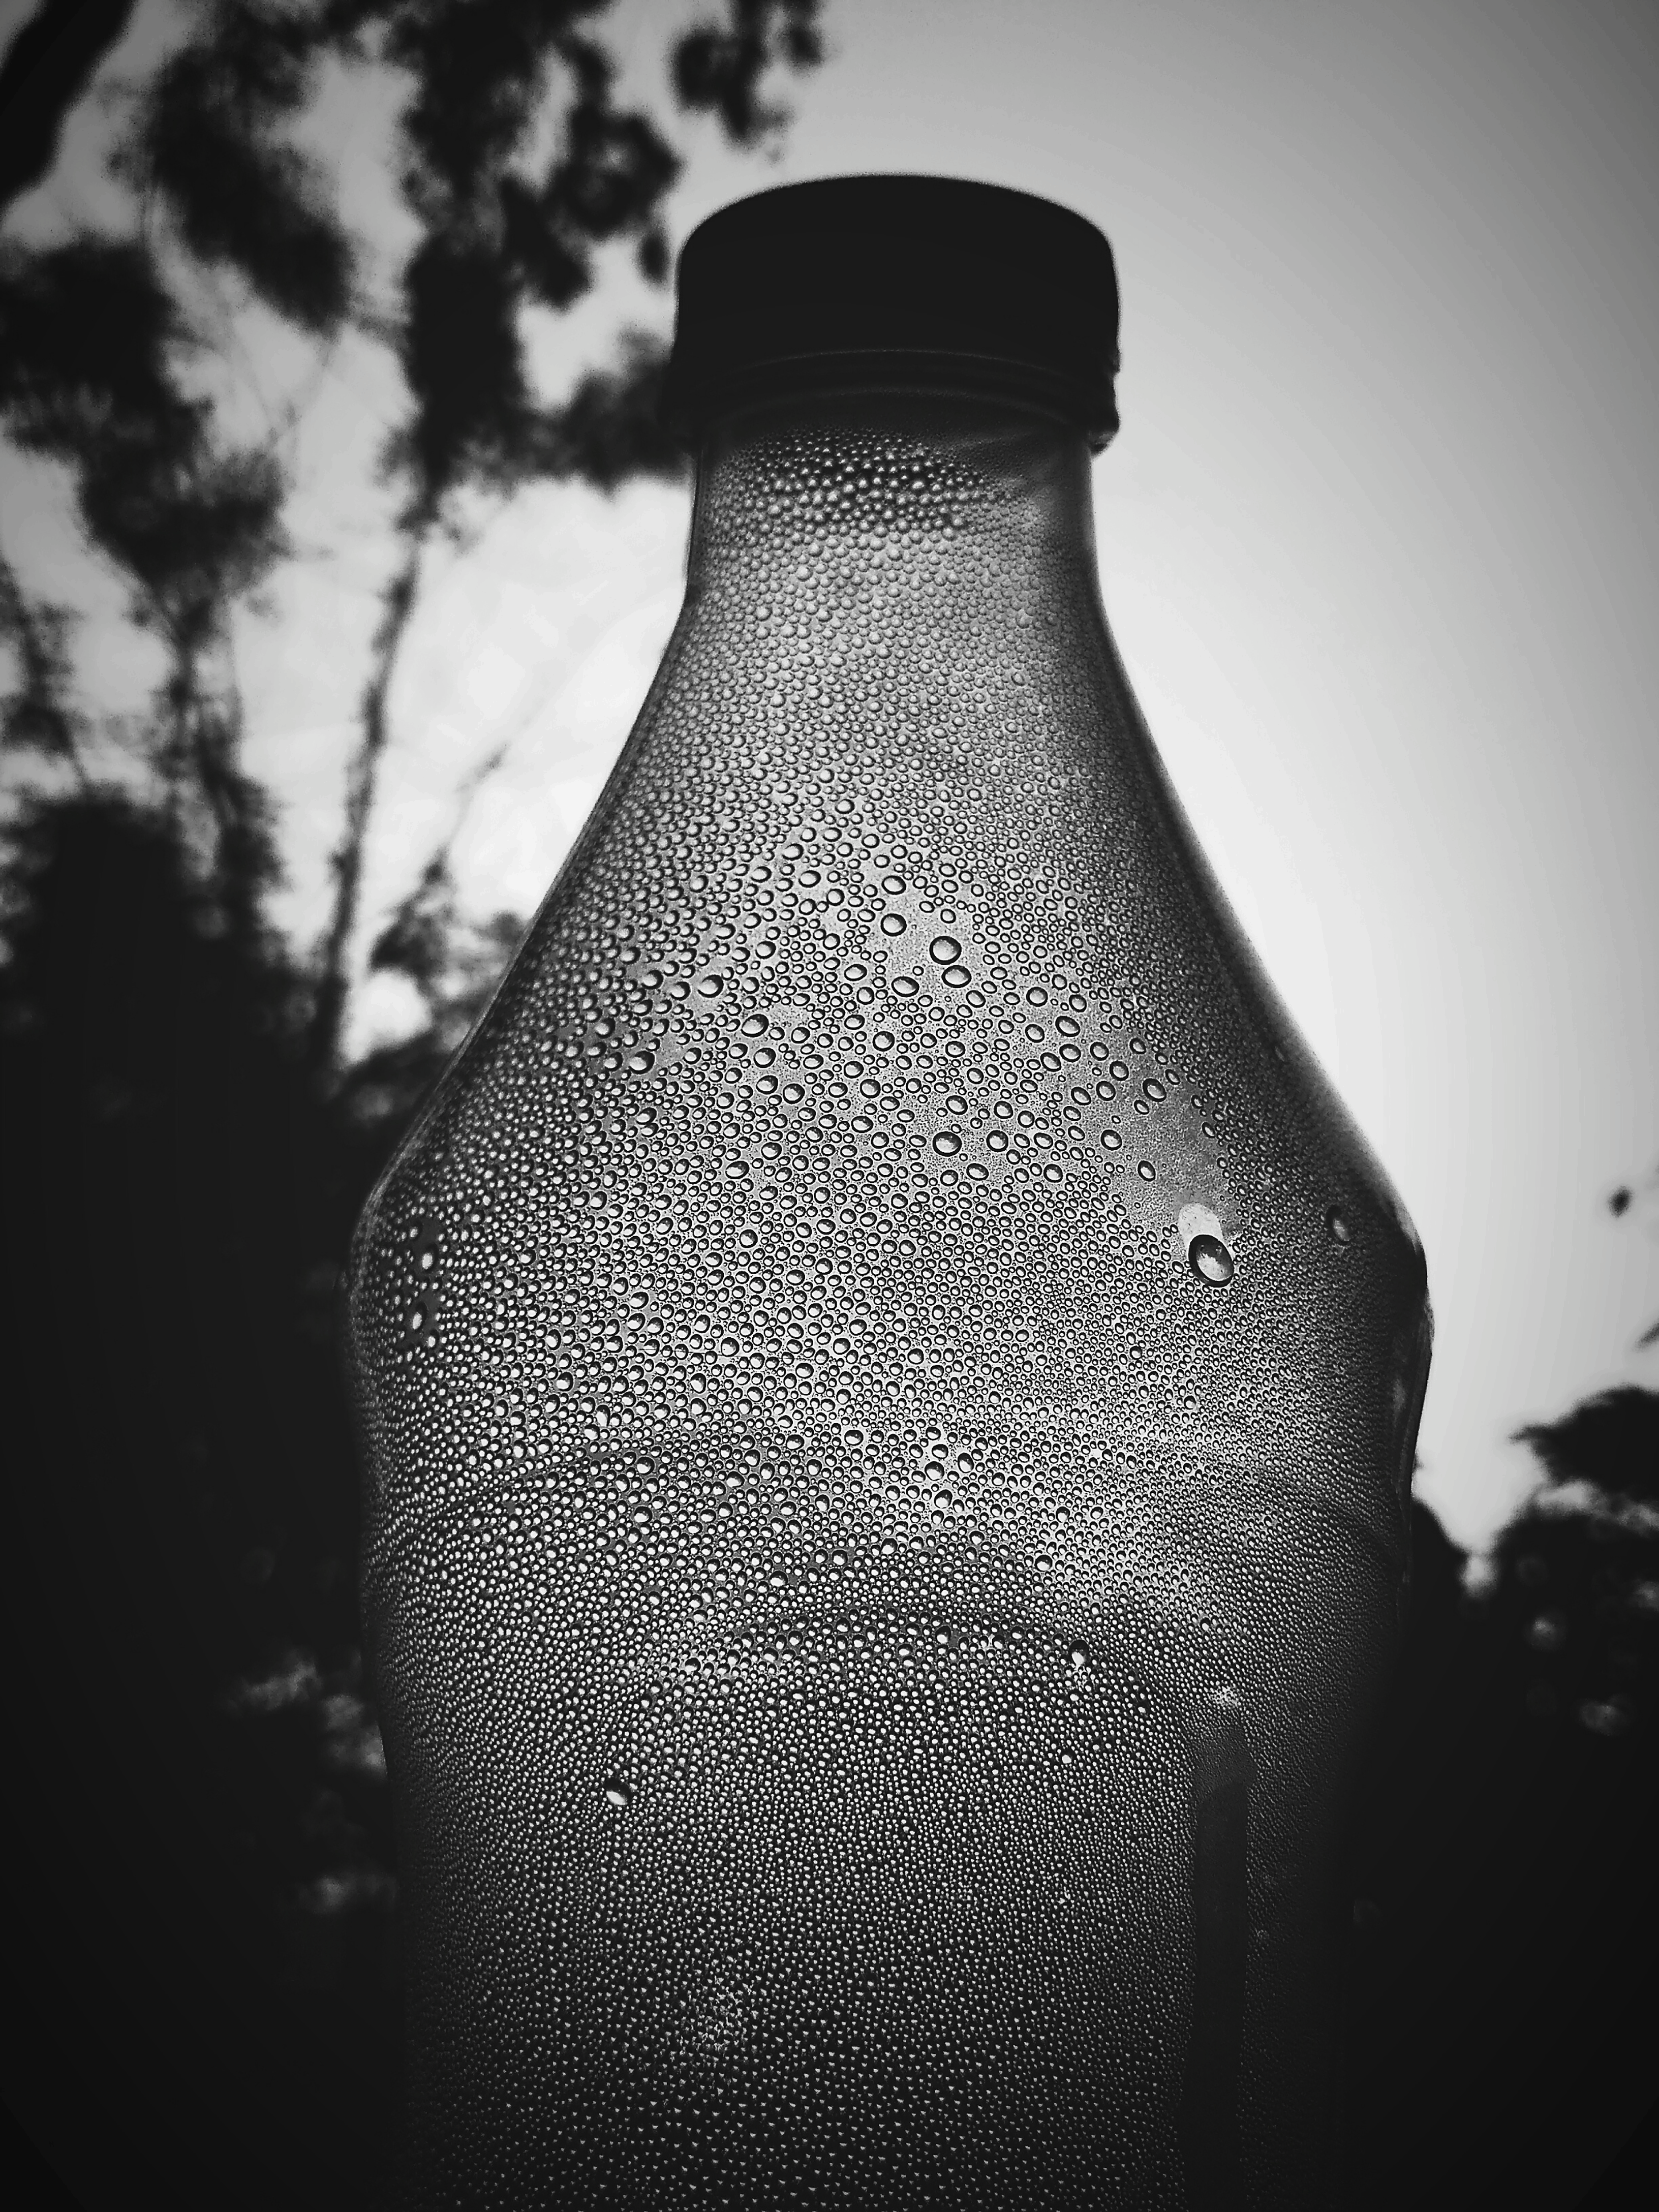 Condensation in a plastic bottle